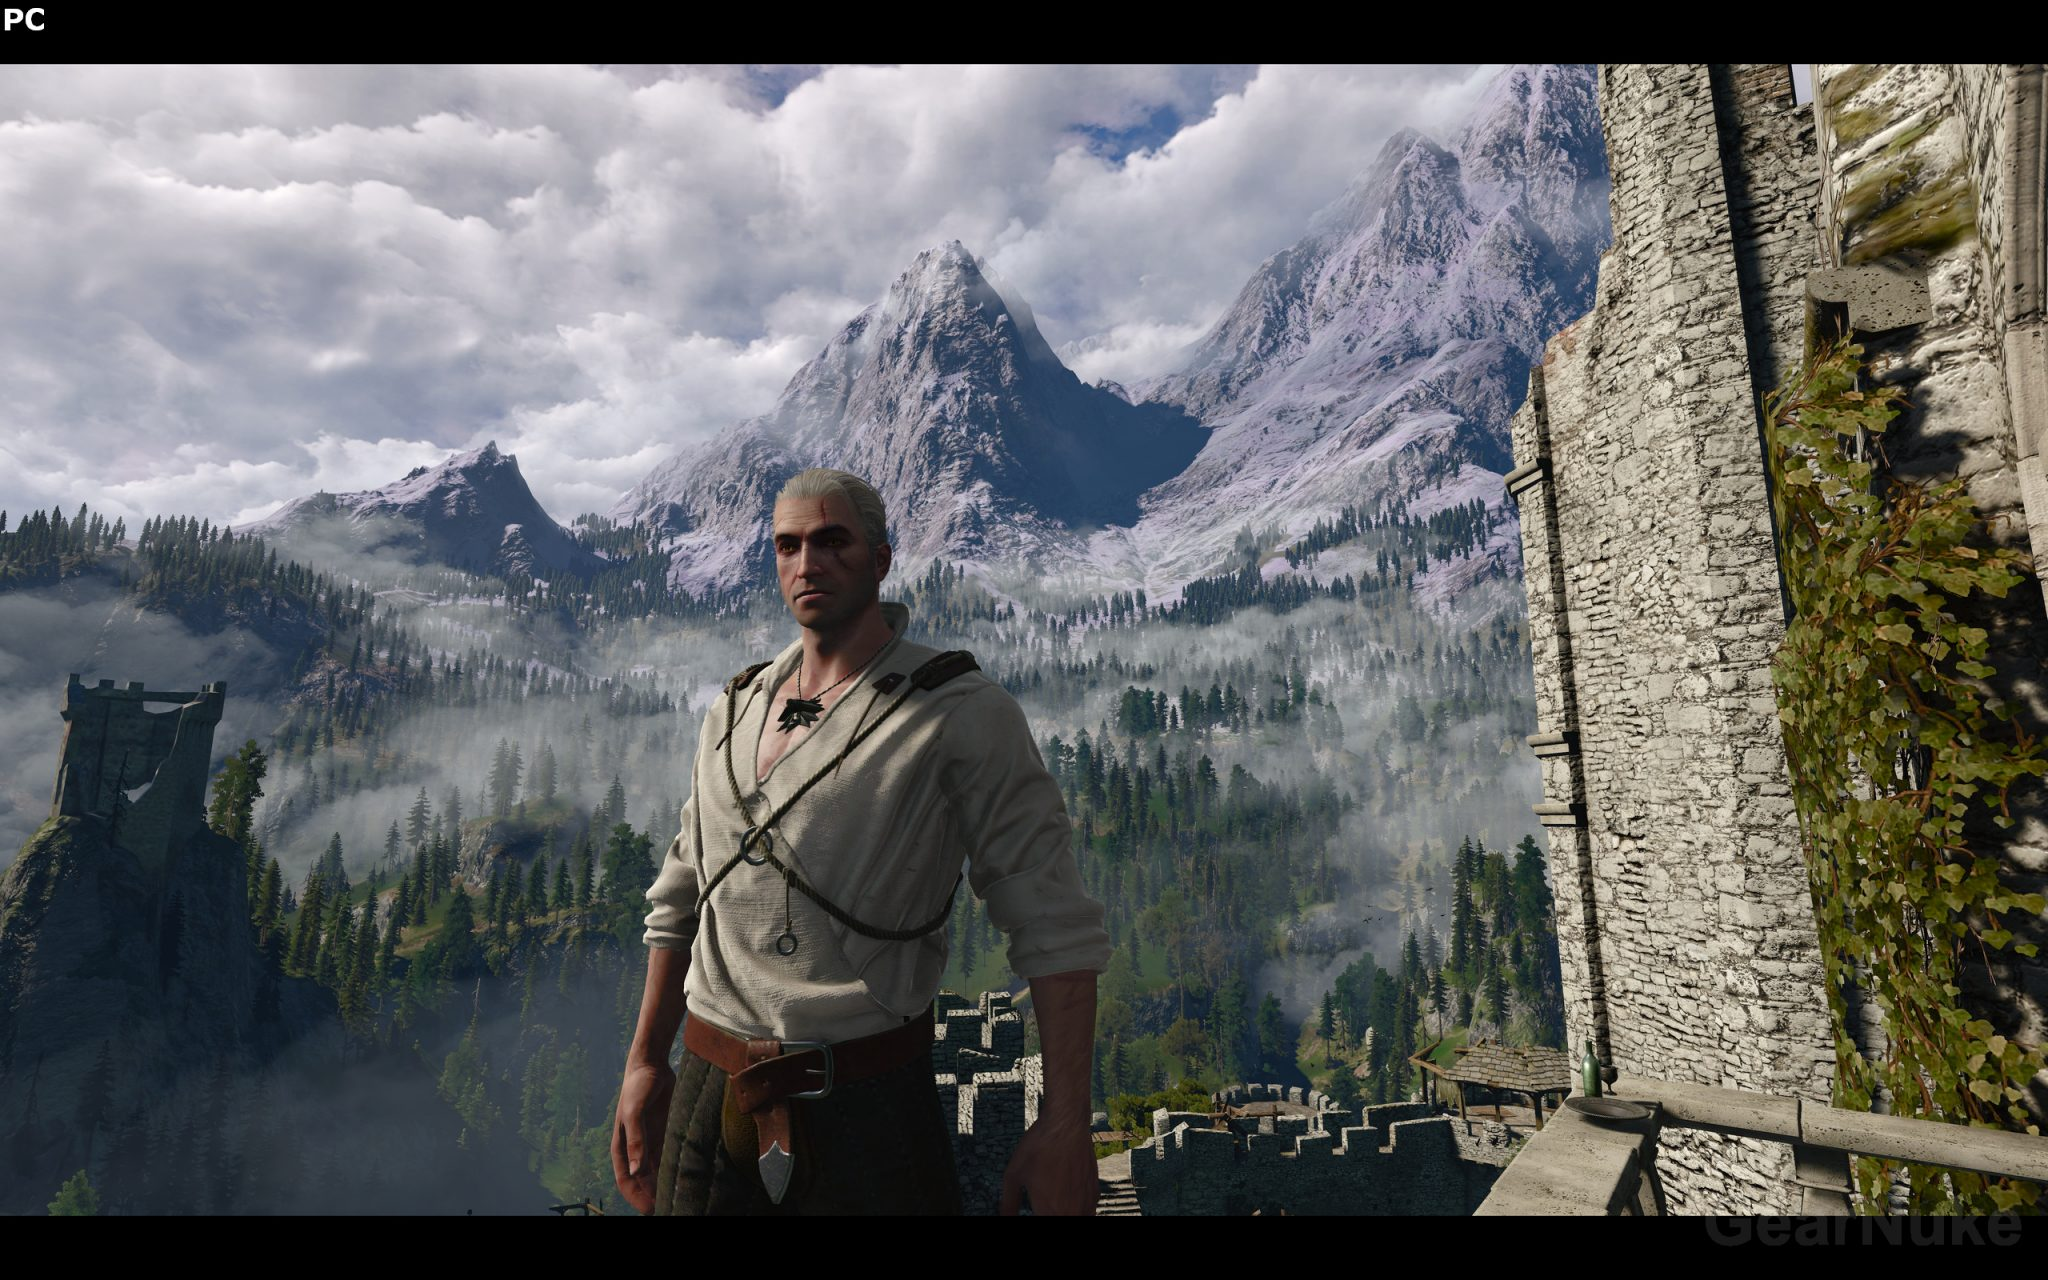 witcher3-comp-pc-6-2